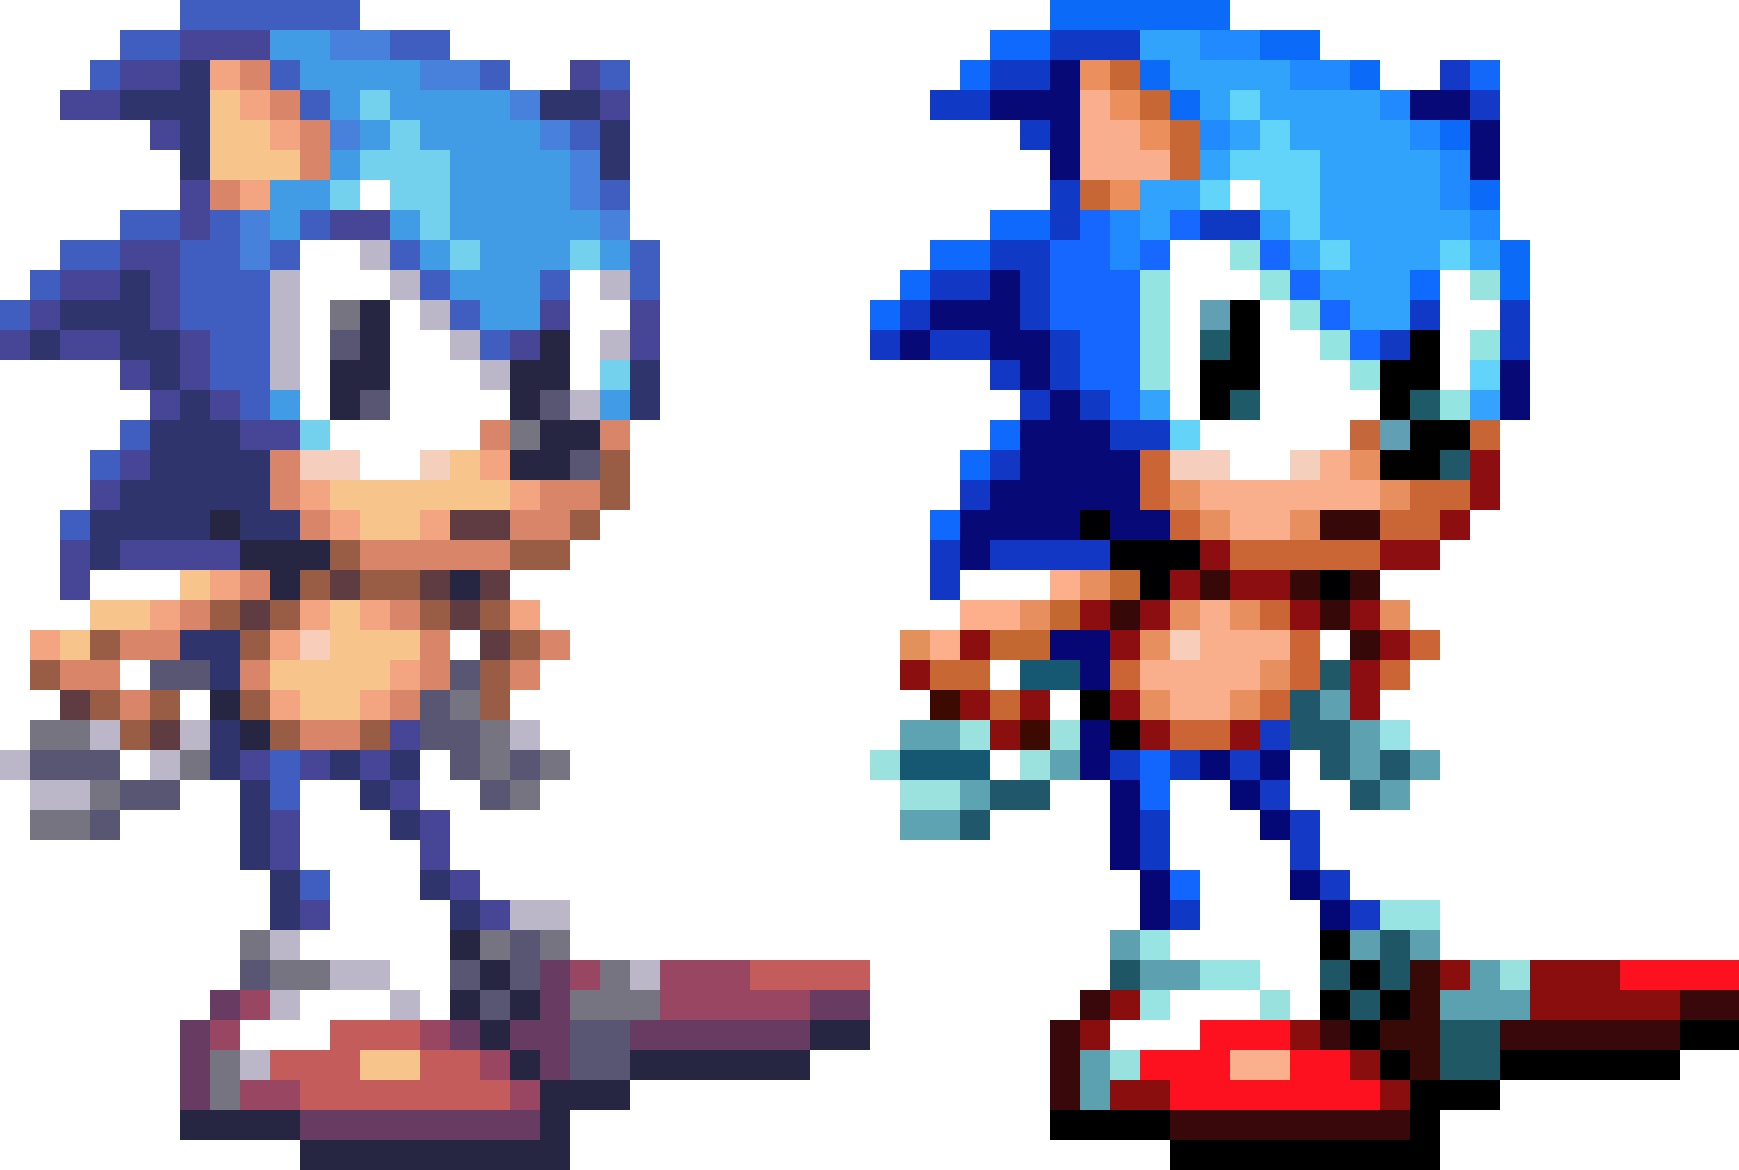 Sonic 1 sprite png. Something i wanted to